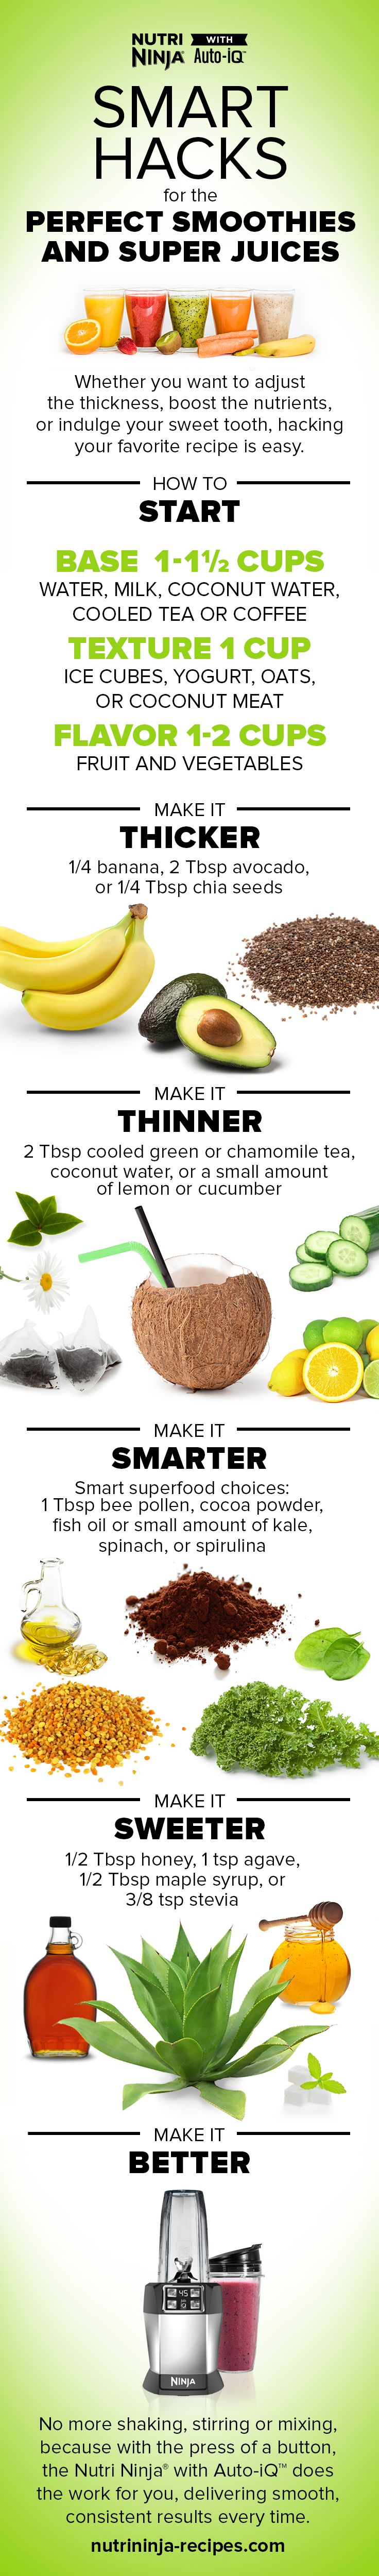 Creating the perfect smoothie or super juice shouldn't be difficult. This guide will help you customize your drink to your heart's delight. Whether you love bananas, avocados, coconut milk, or superfoods in your smoothie, there is a way to work them into the mix. Just keep this guide handy near your Nutri Ninja® with Auto-iQ™.